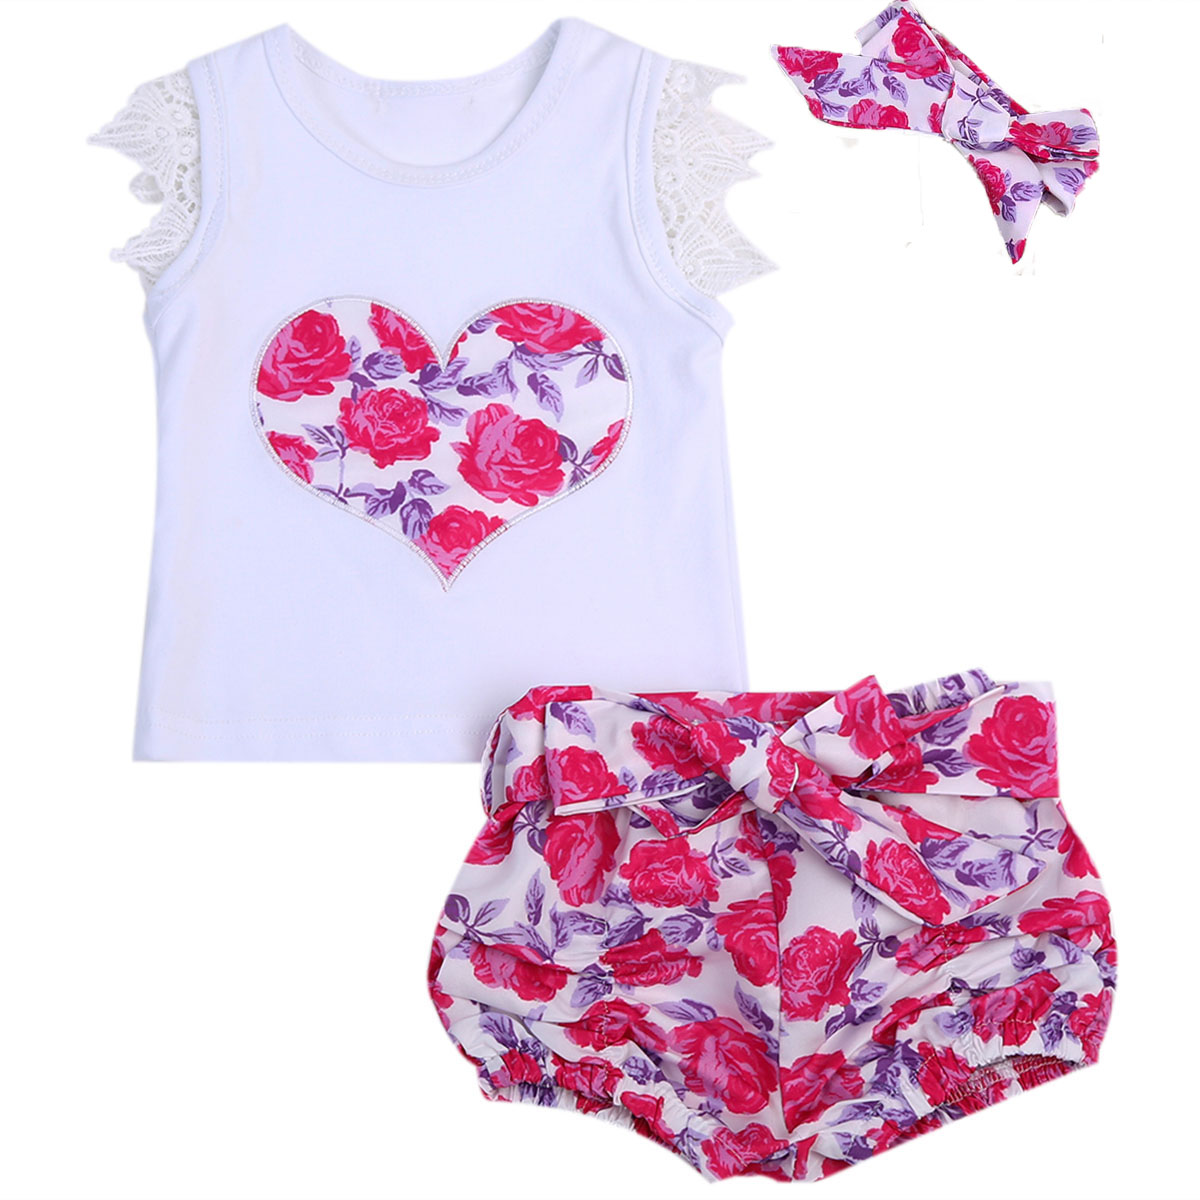 0-3T Baby Clothing Set Toddler Kids Baby Girls Heart Shaped Outfit Clothes Lace T-shirt Tops+Floral Shorts +headband 3PCS 3pcs outfit infantil girls clothes toddler baby girl plaid ruffled tops kids girls denim shorts cute headband summer outfits set